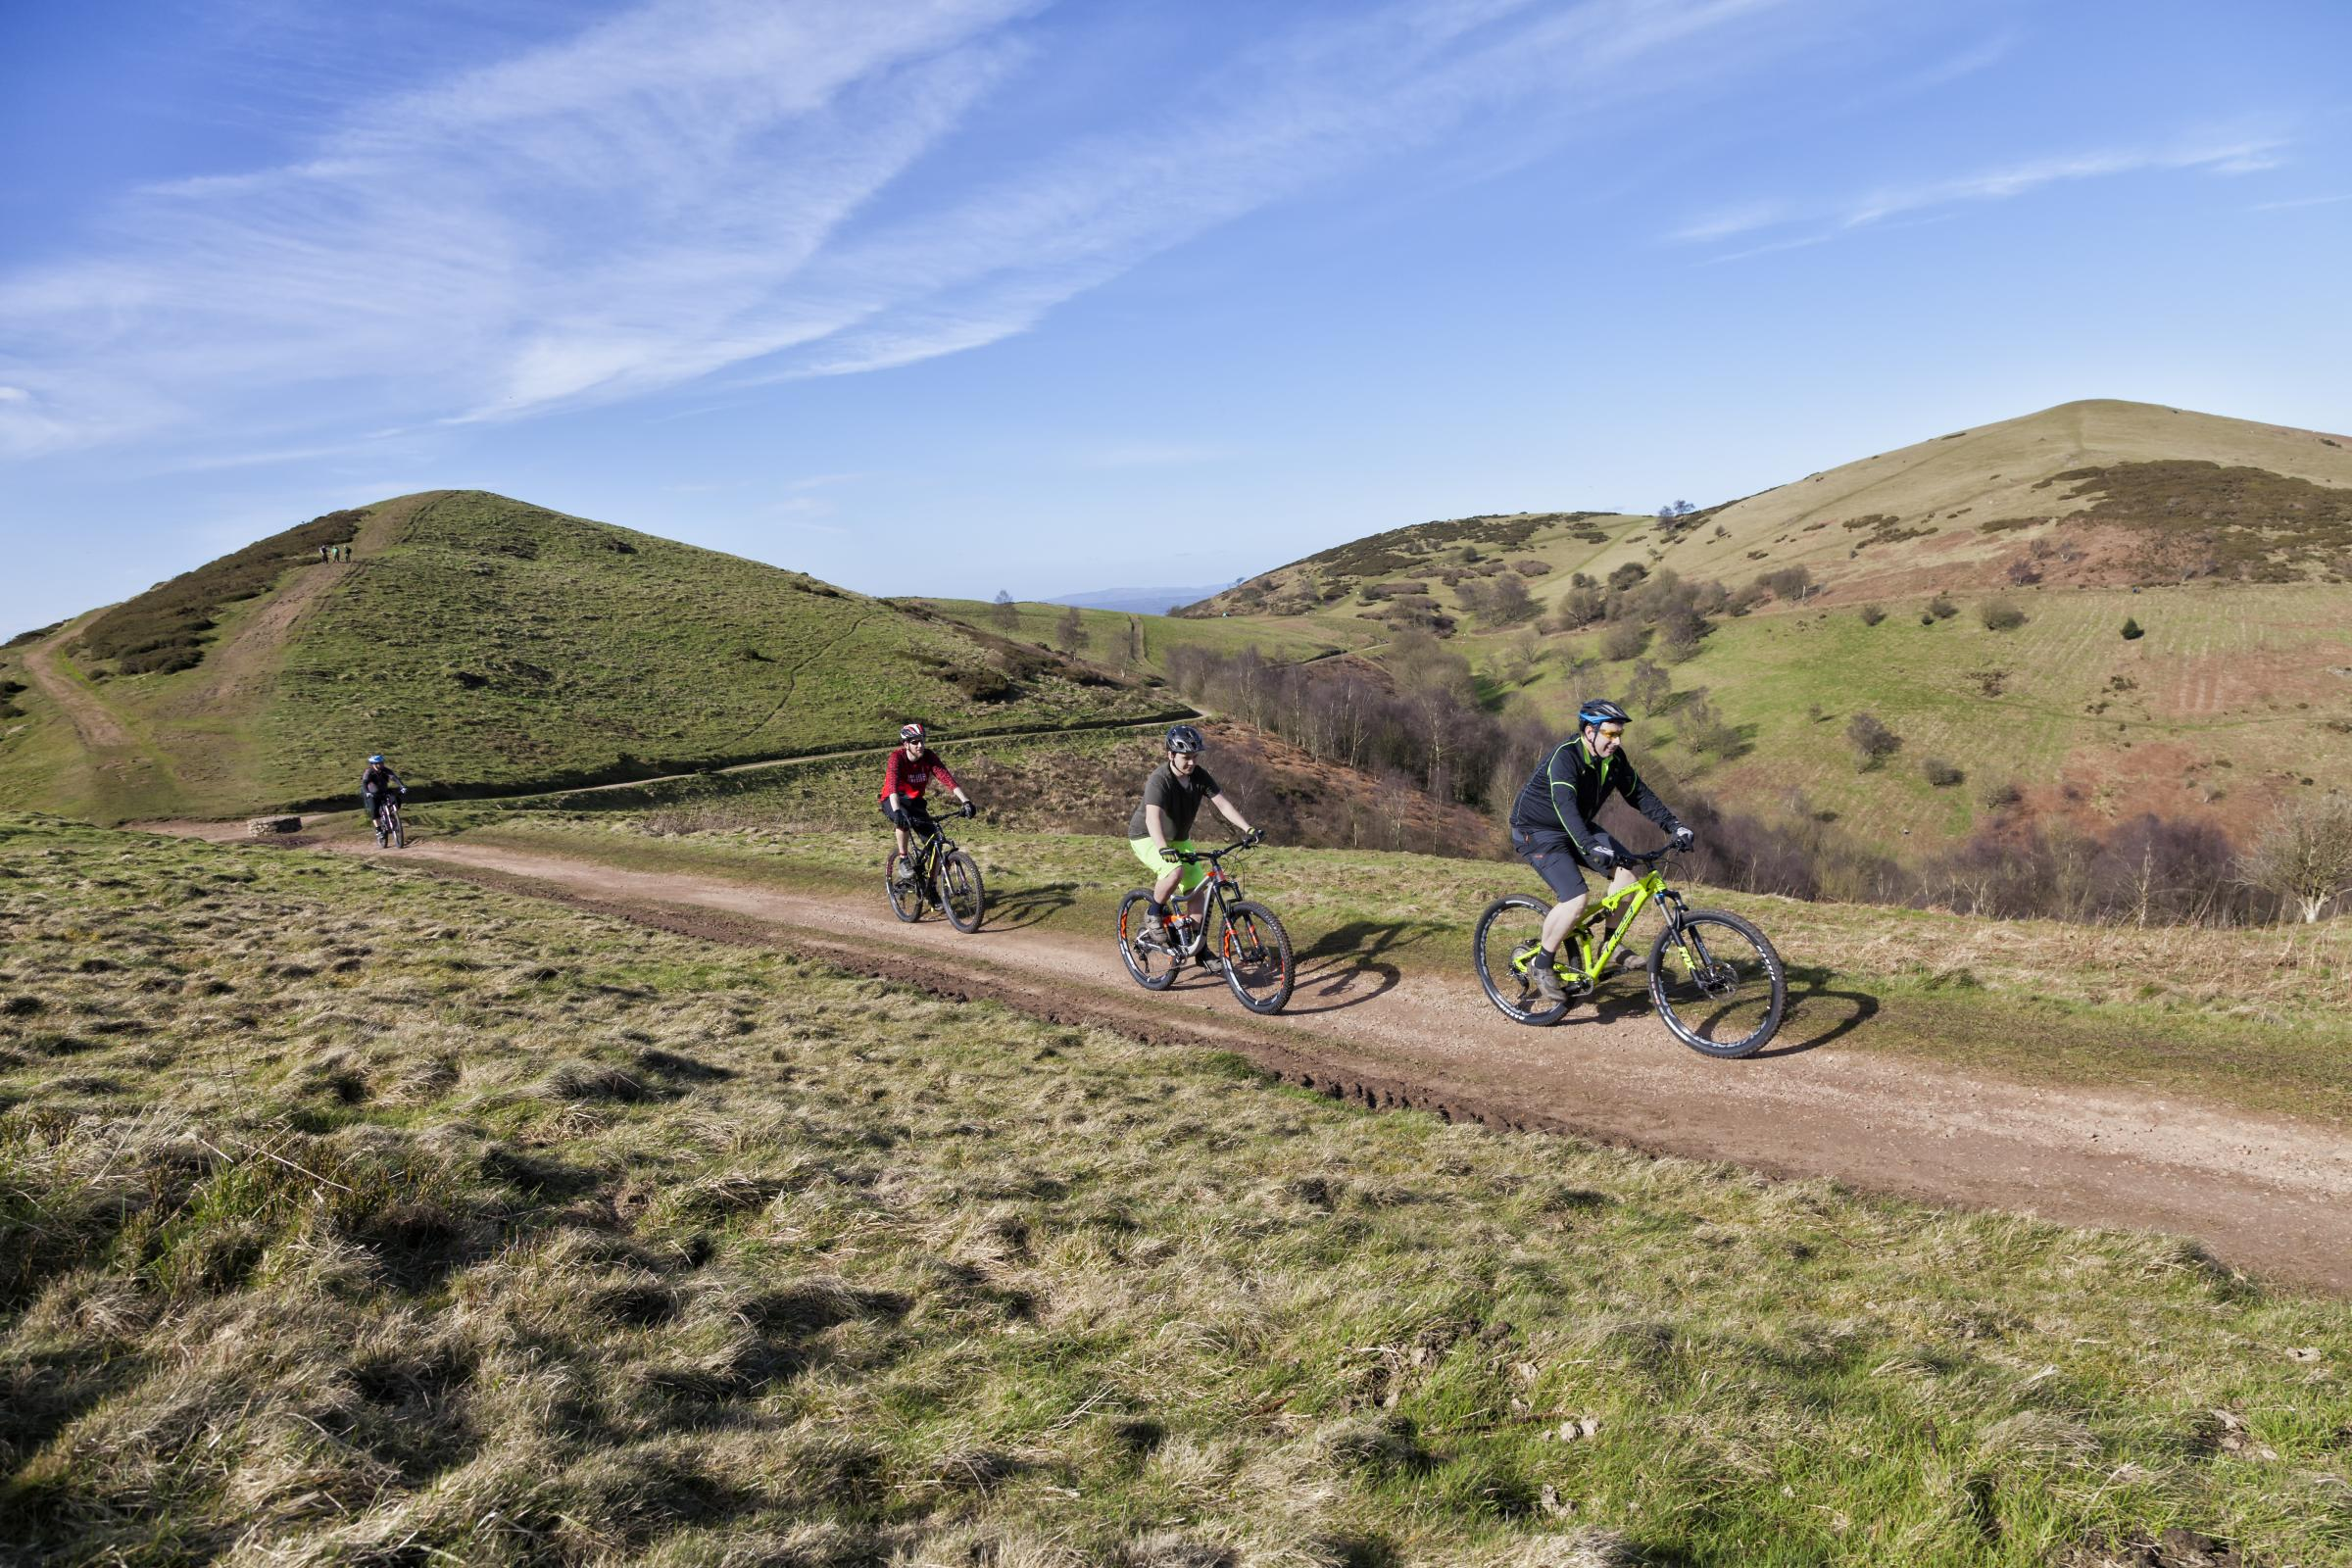 Riders on the Malvern Hills.